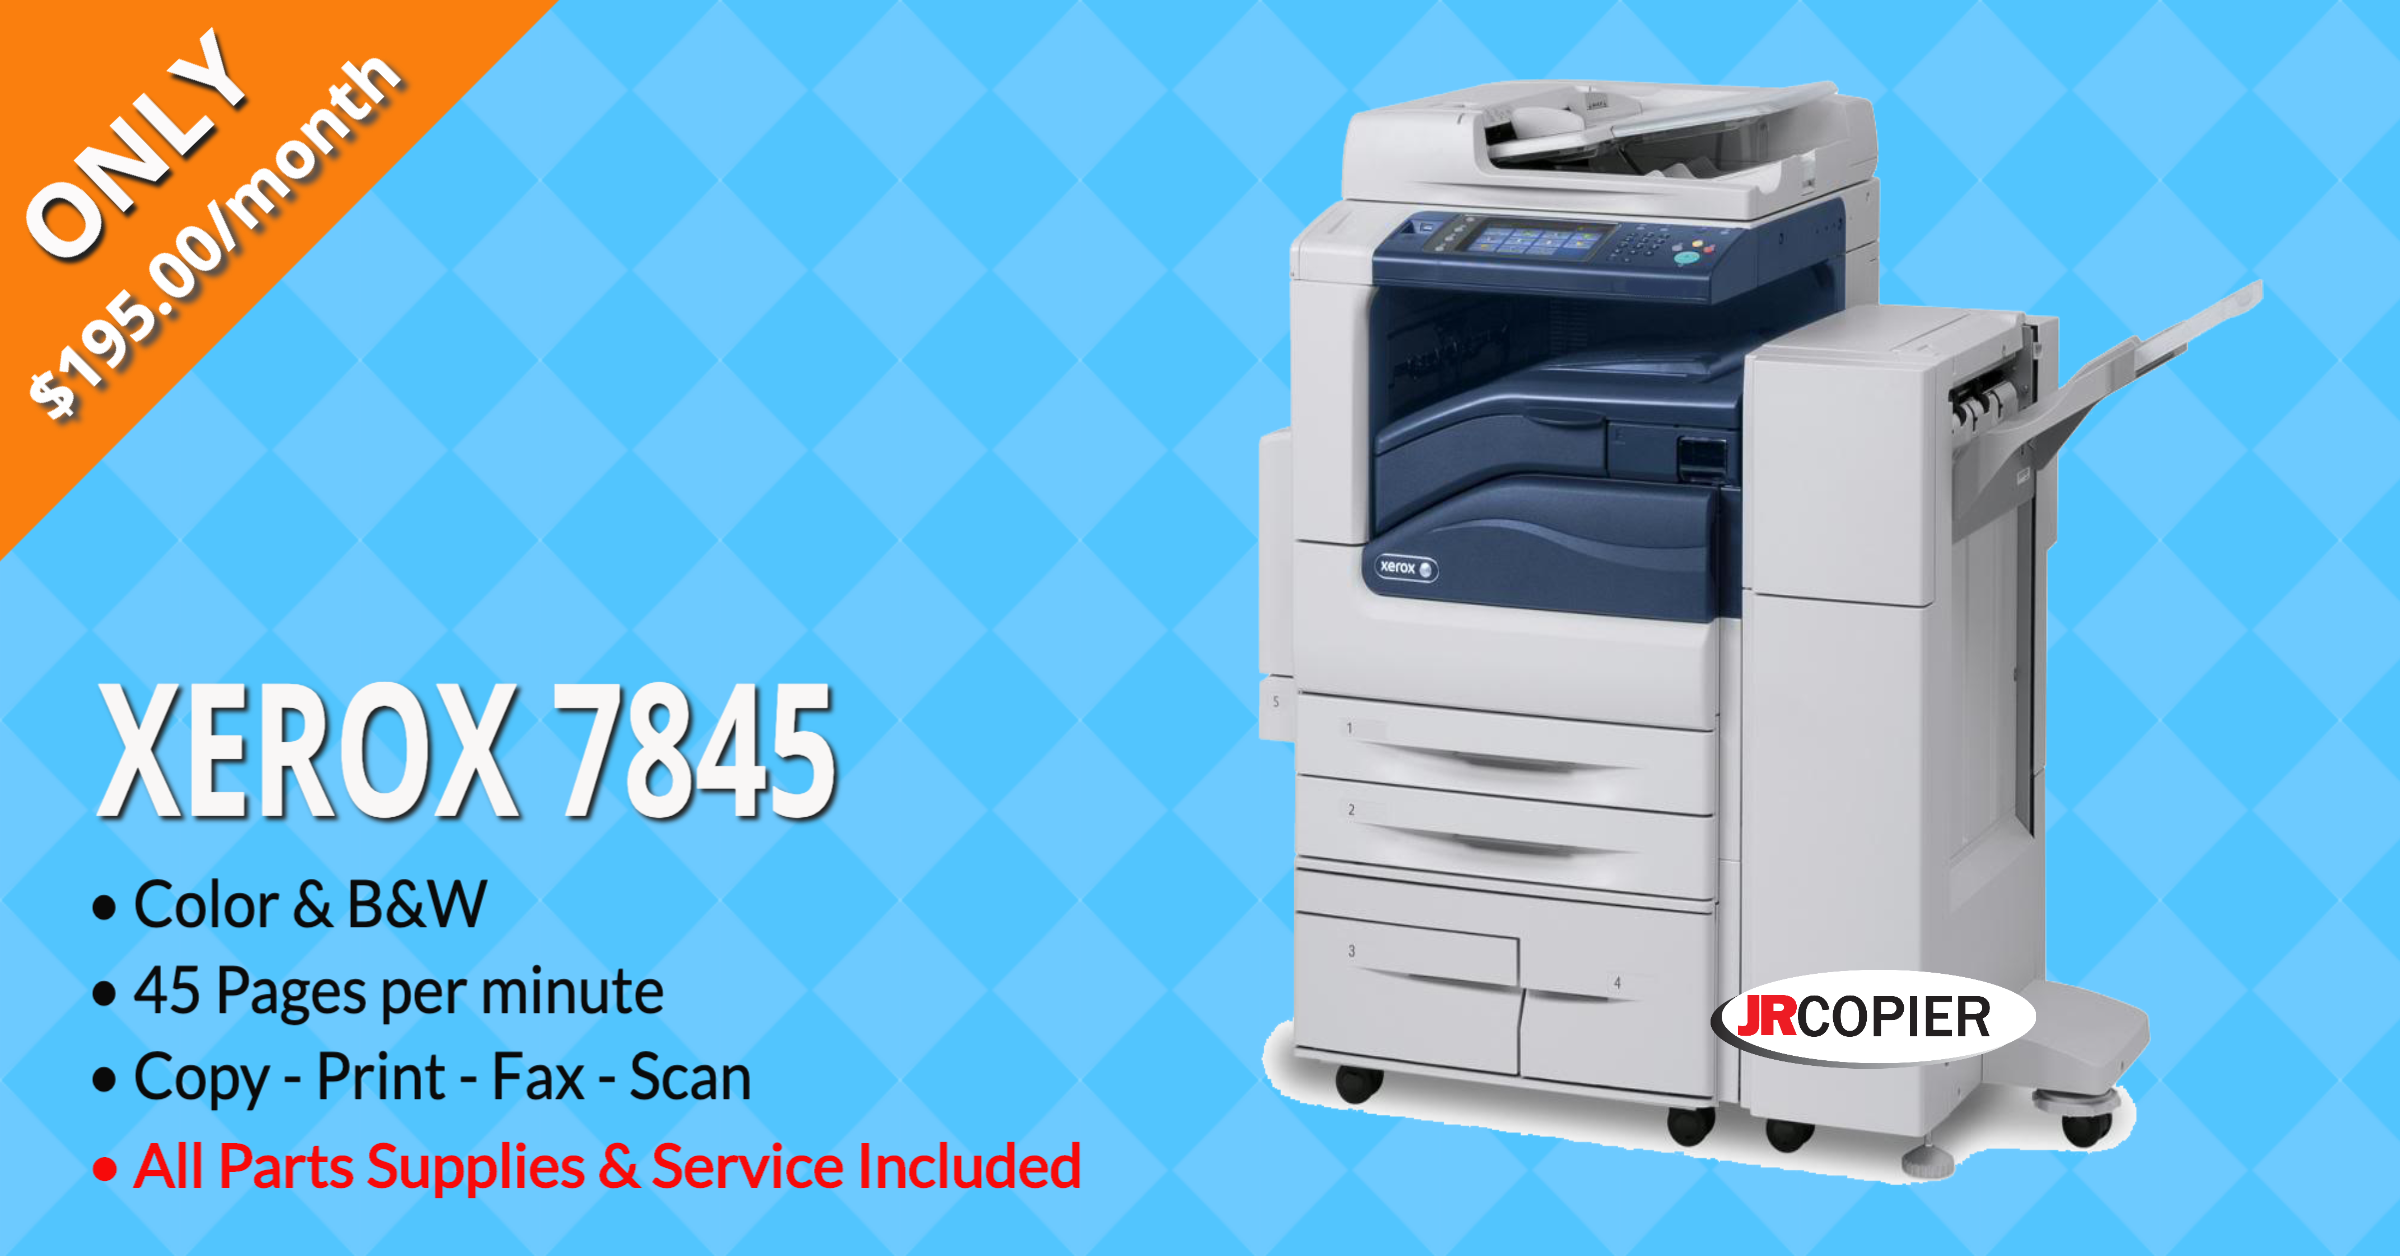 Printer Rental Services 33455, 33475